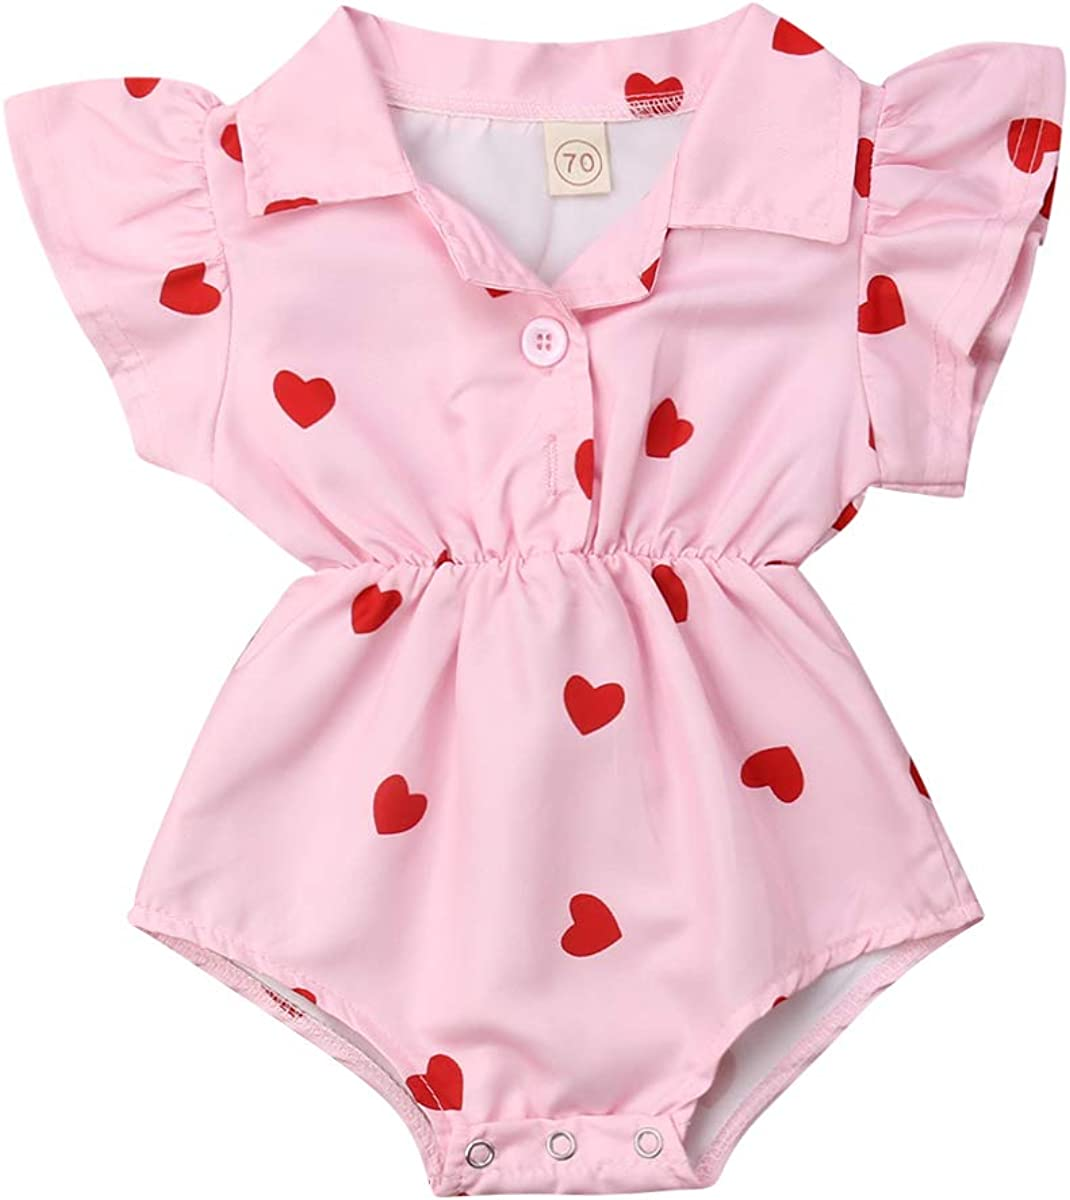 2021 Newborn Baby Girls Valentine's Day Heart Patter Clothes Outlet sale feature Set Charlotte Mall